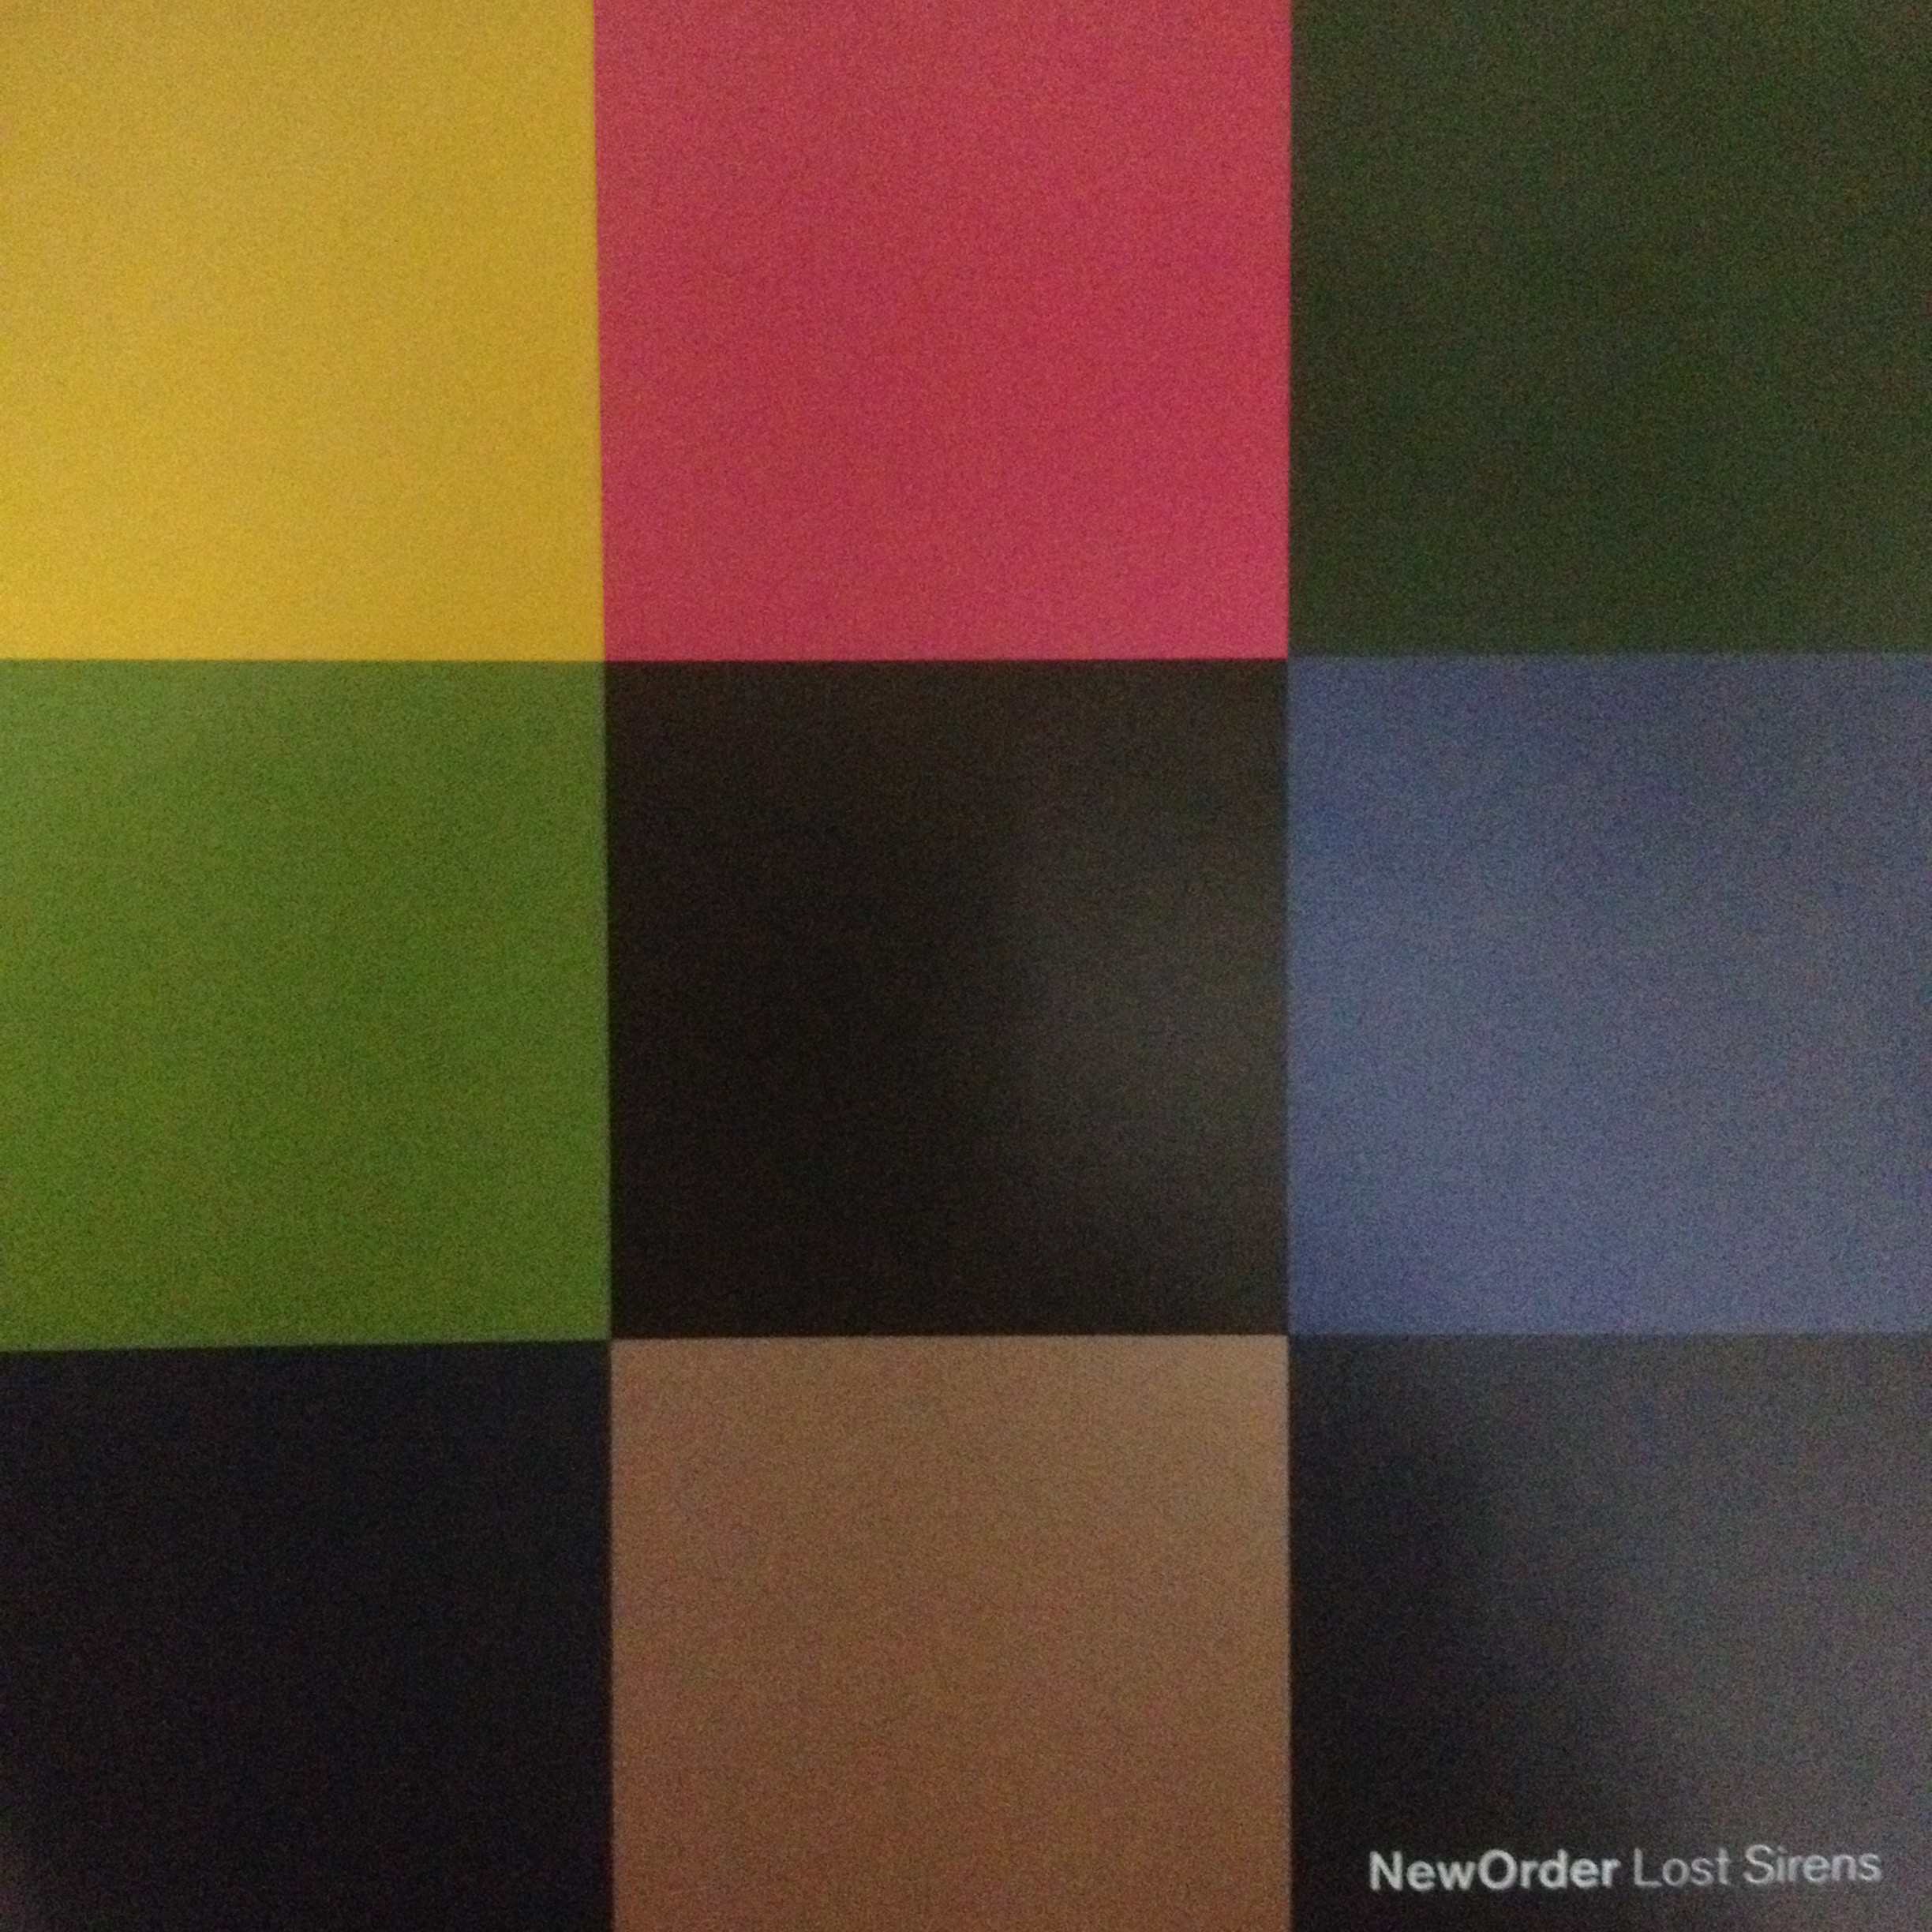 NEW ORDER 「I'll Stay With You」「Sugarcane」